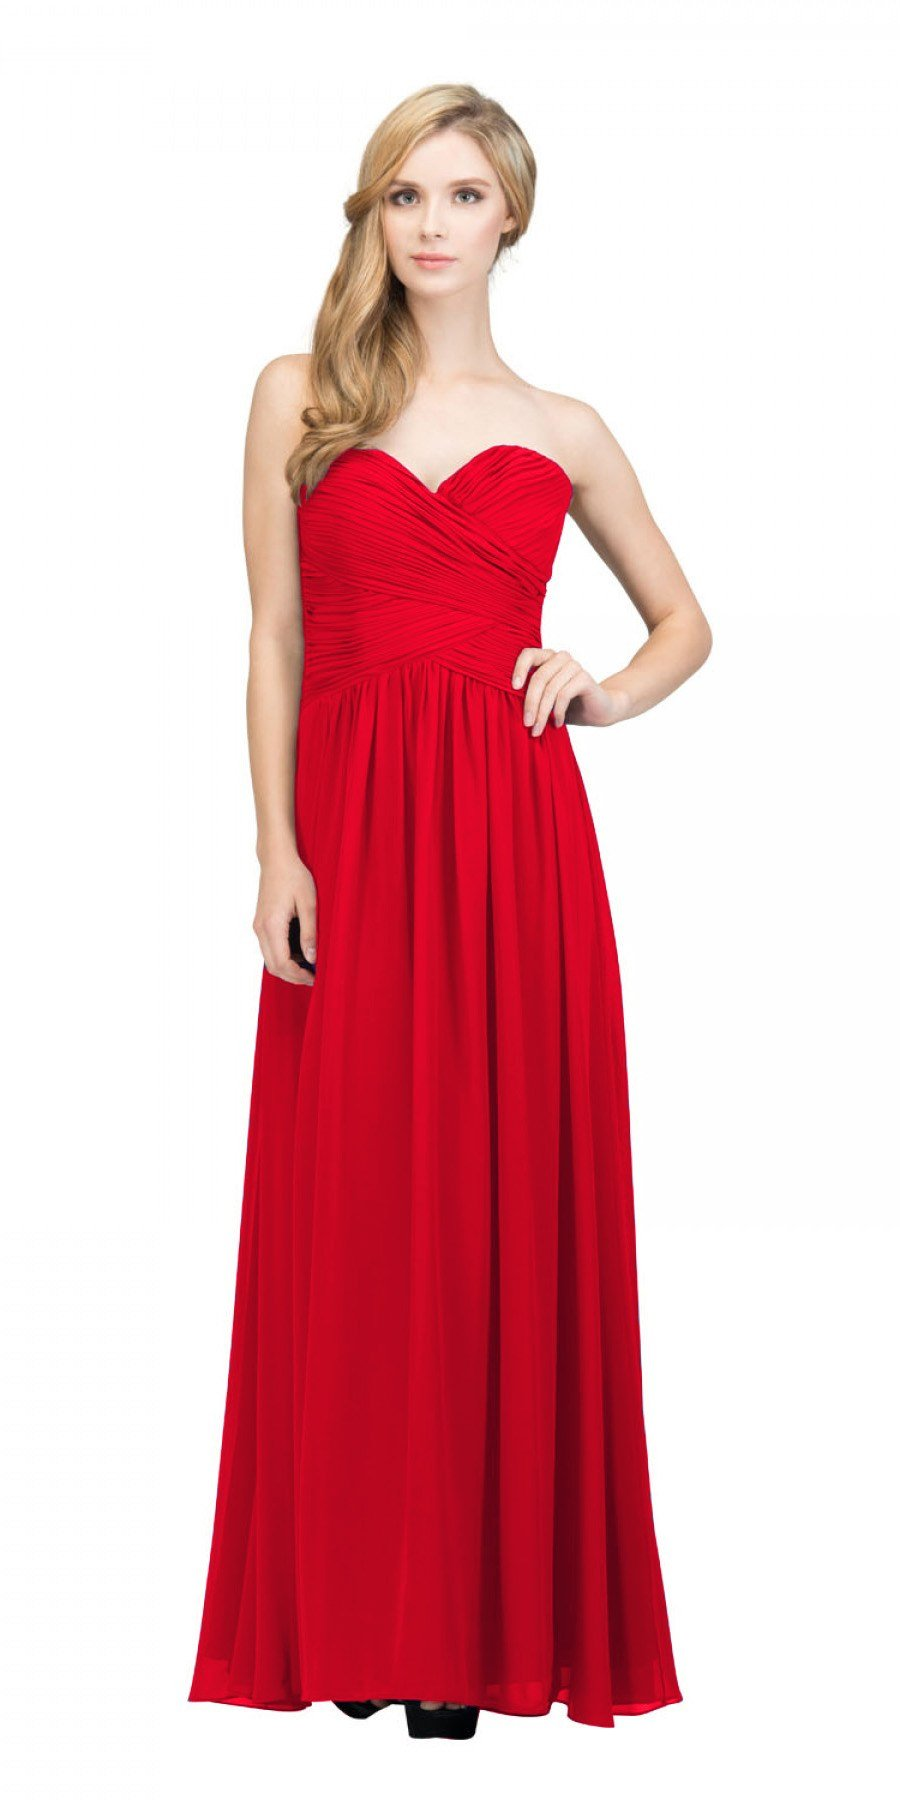 9dfedef2c3 Starbox USA L6126 Sweetheart Ruched Chiffon Red Bridesmaid Dress ...